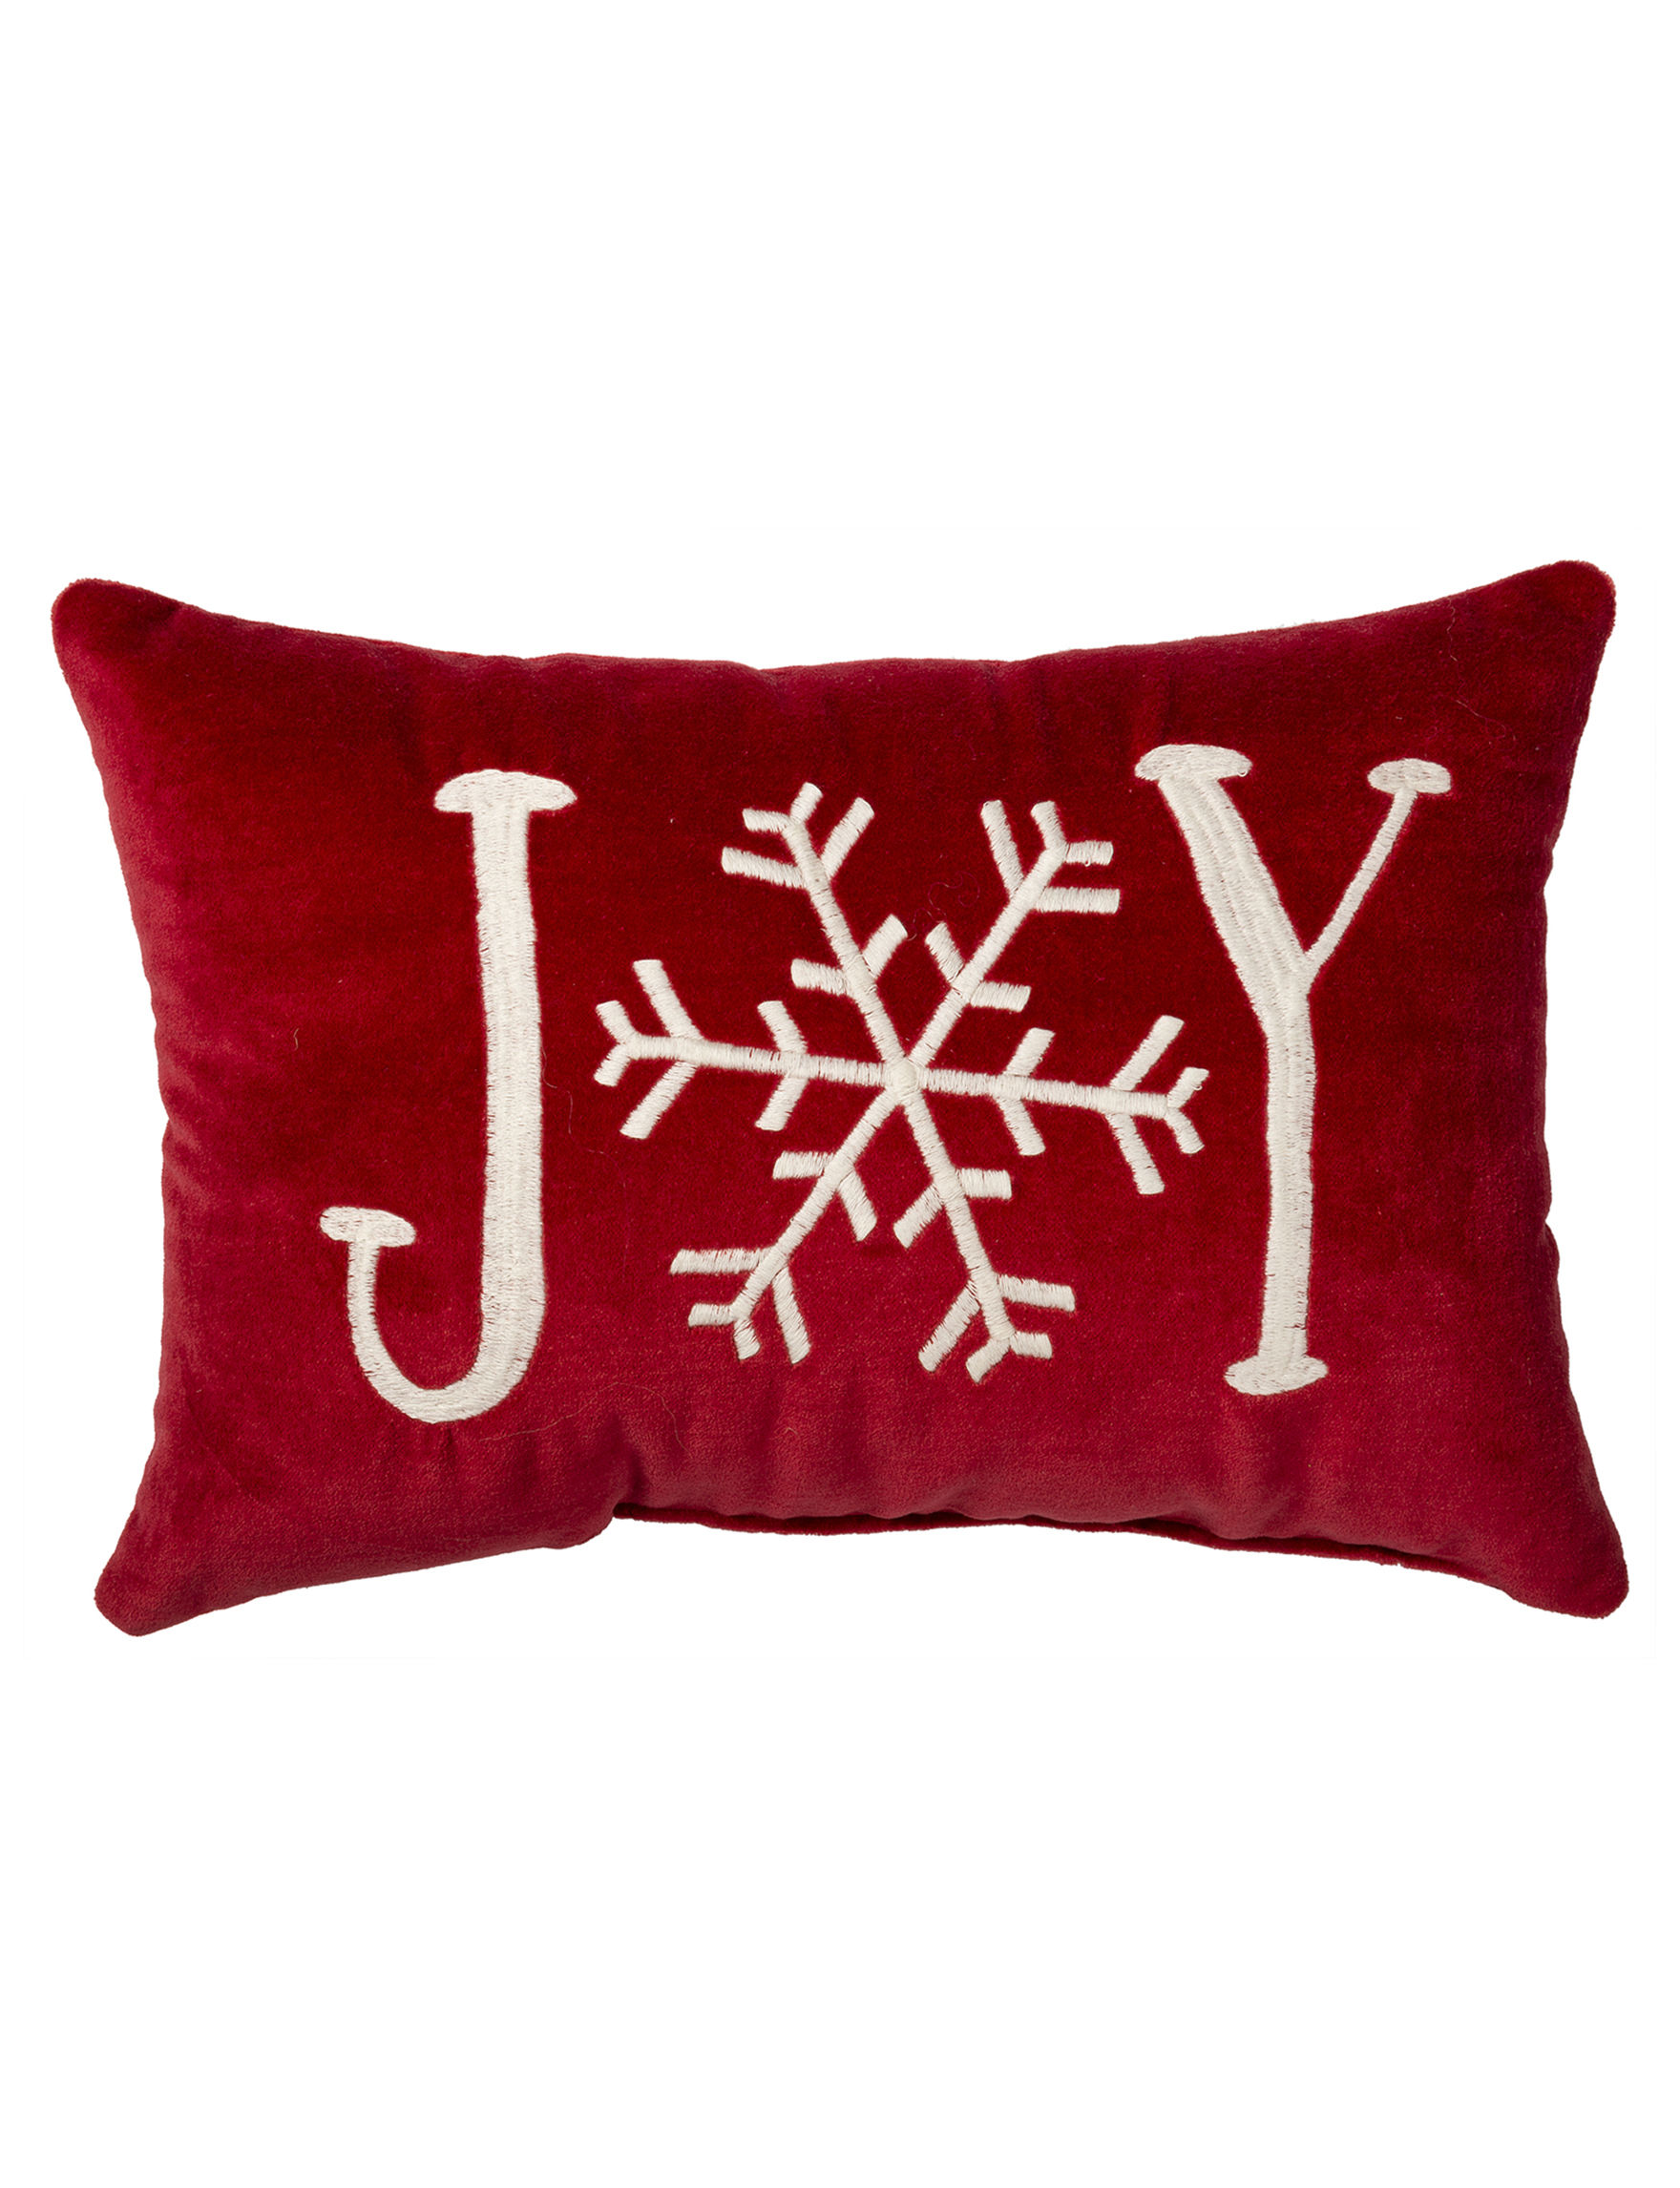 Primitives by Kathy Red Decorative Pillows